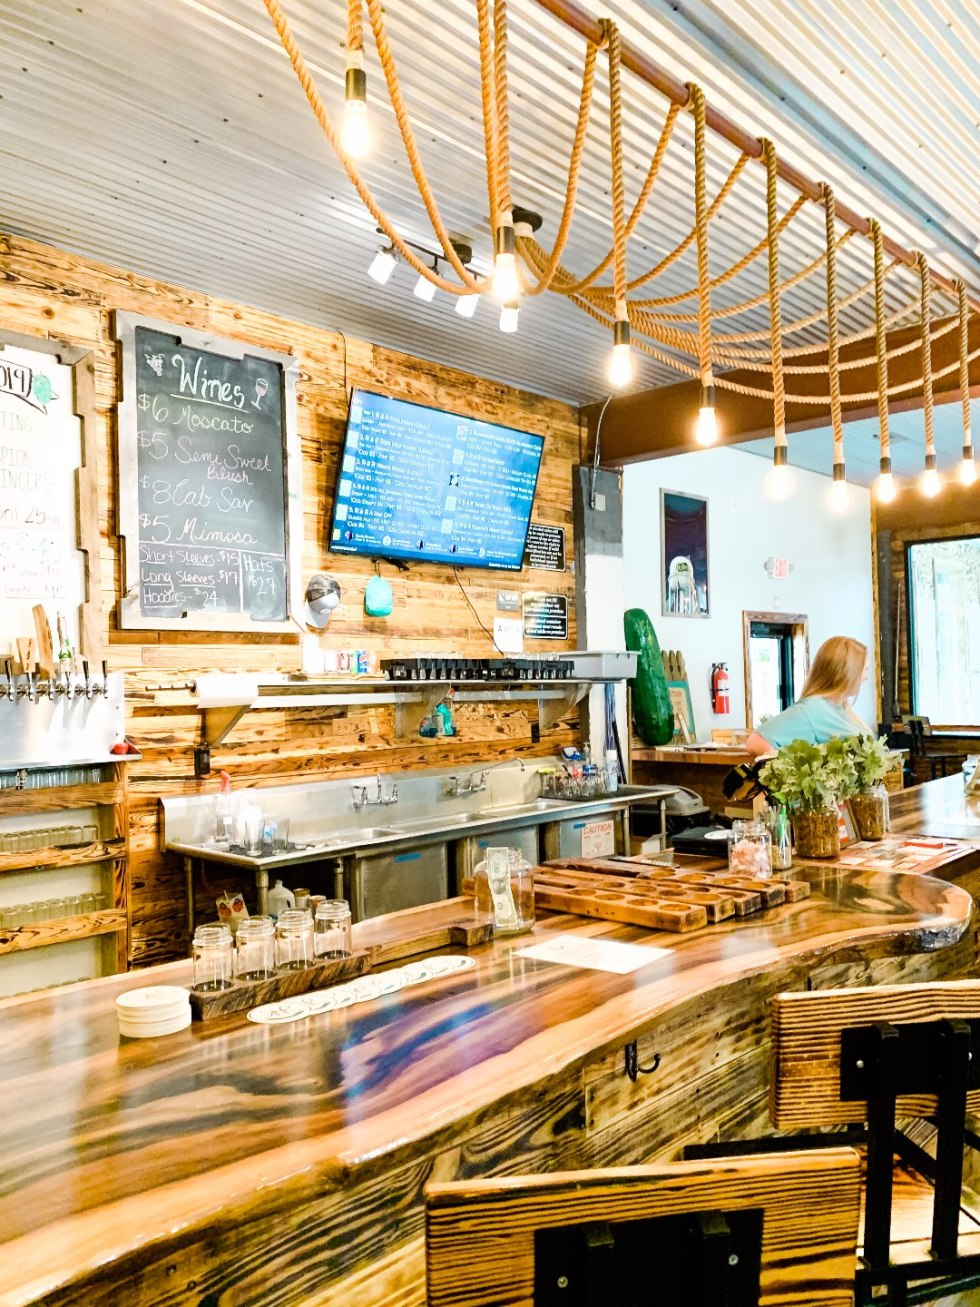 Eastern North Carolina Travel Guide: Top 10 Things to Do in Goldsboro NC by popular North Carolina blog, I'm Fixin' To: image of R & R Brewing.